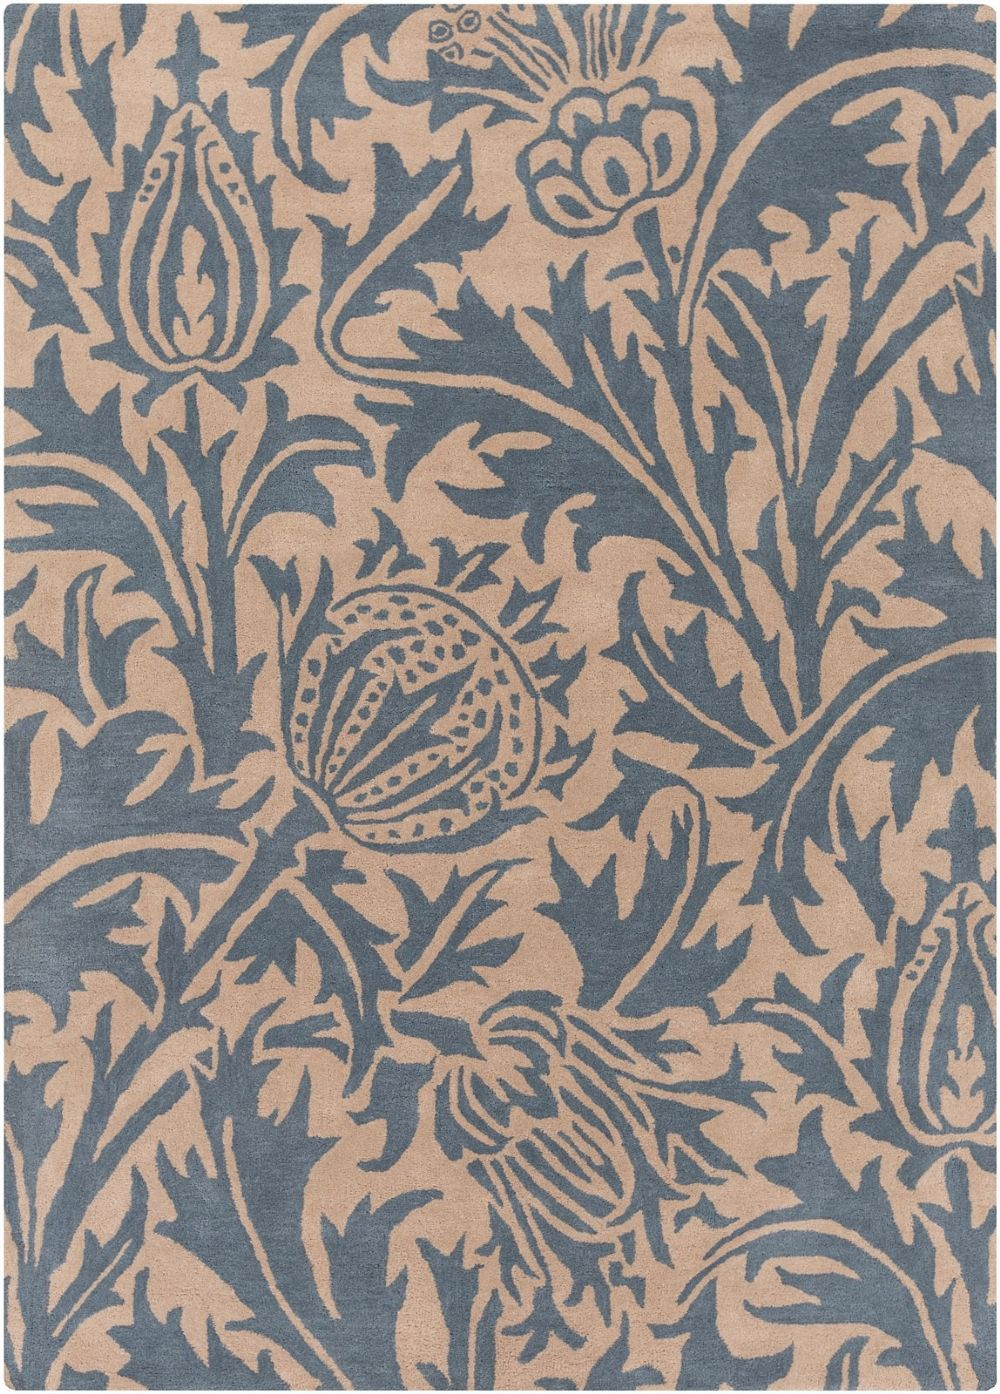 surya william morris country & floral area rug collection